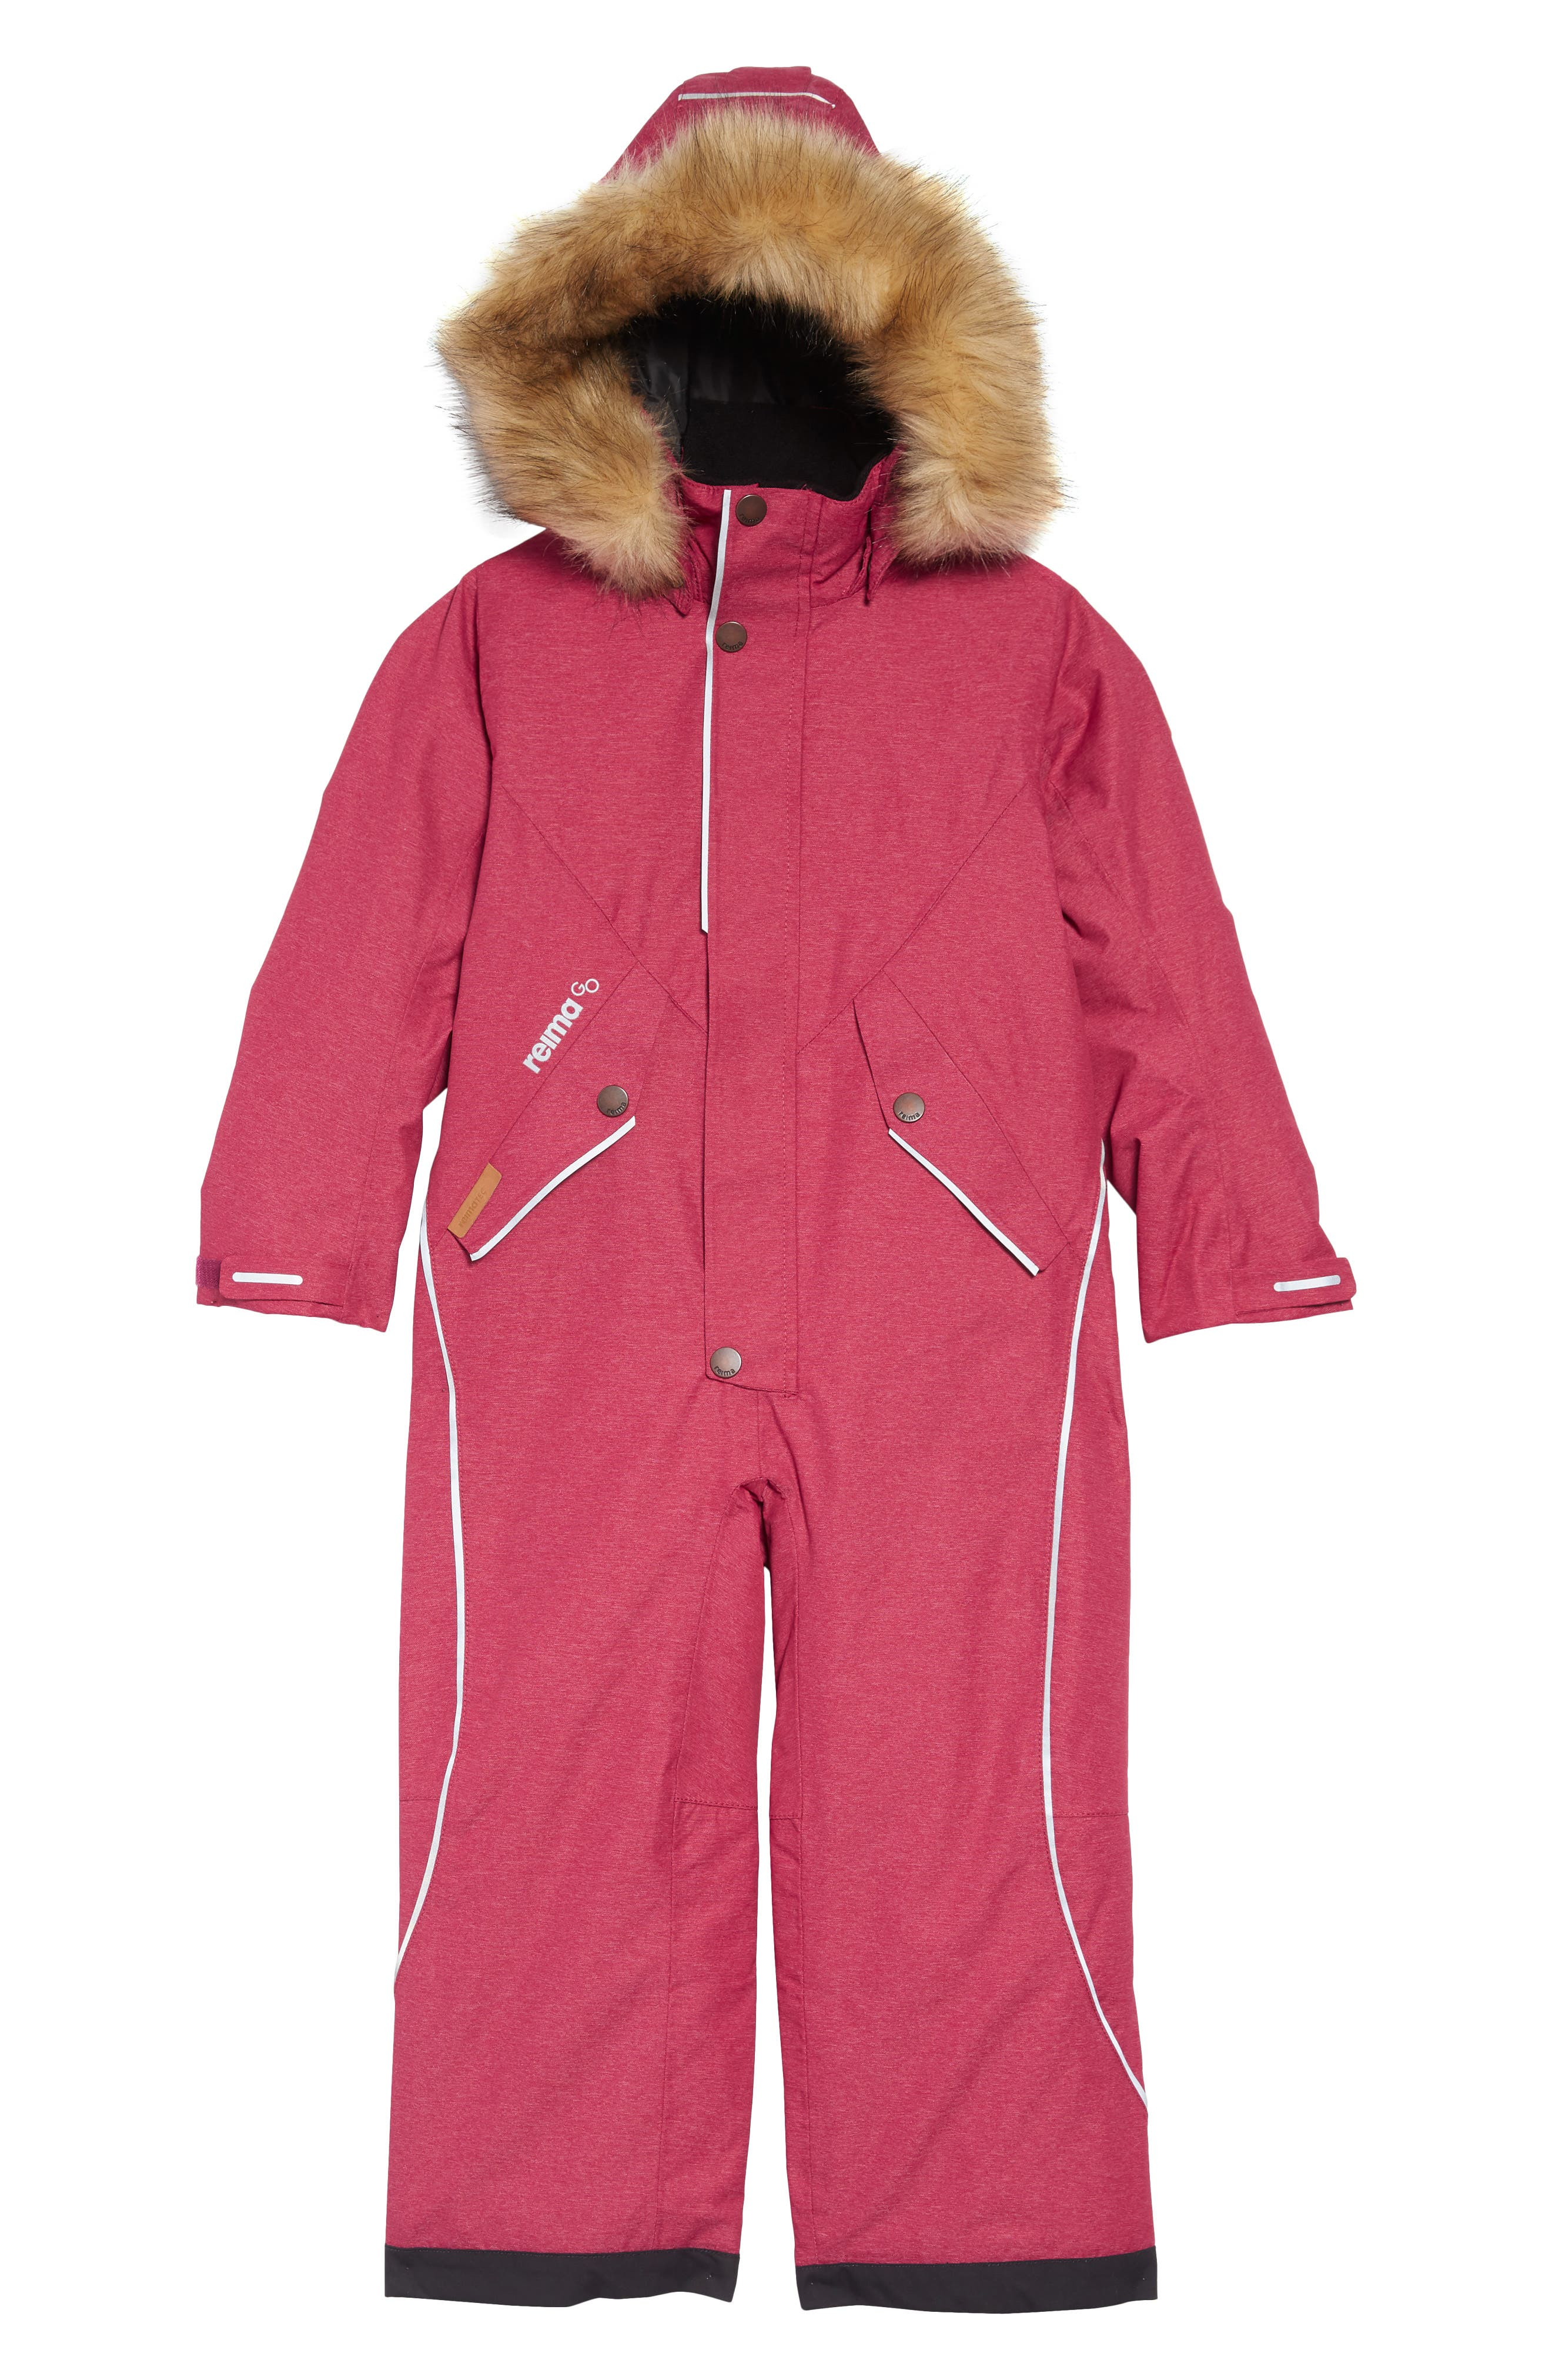 Toddler Girls Reima Vuoret Reimatec Waterproof Insulated Snow Suit With Faux Fur Trim Size 4Y  104 cm  Pink